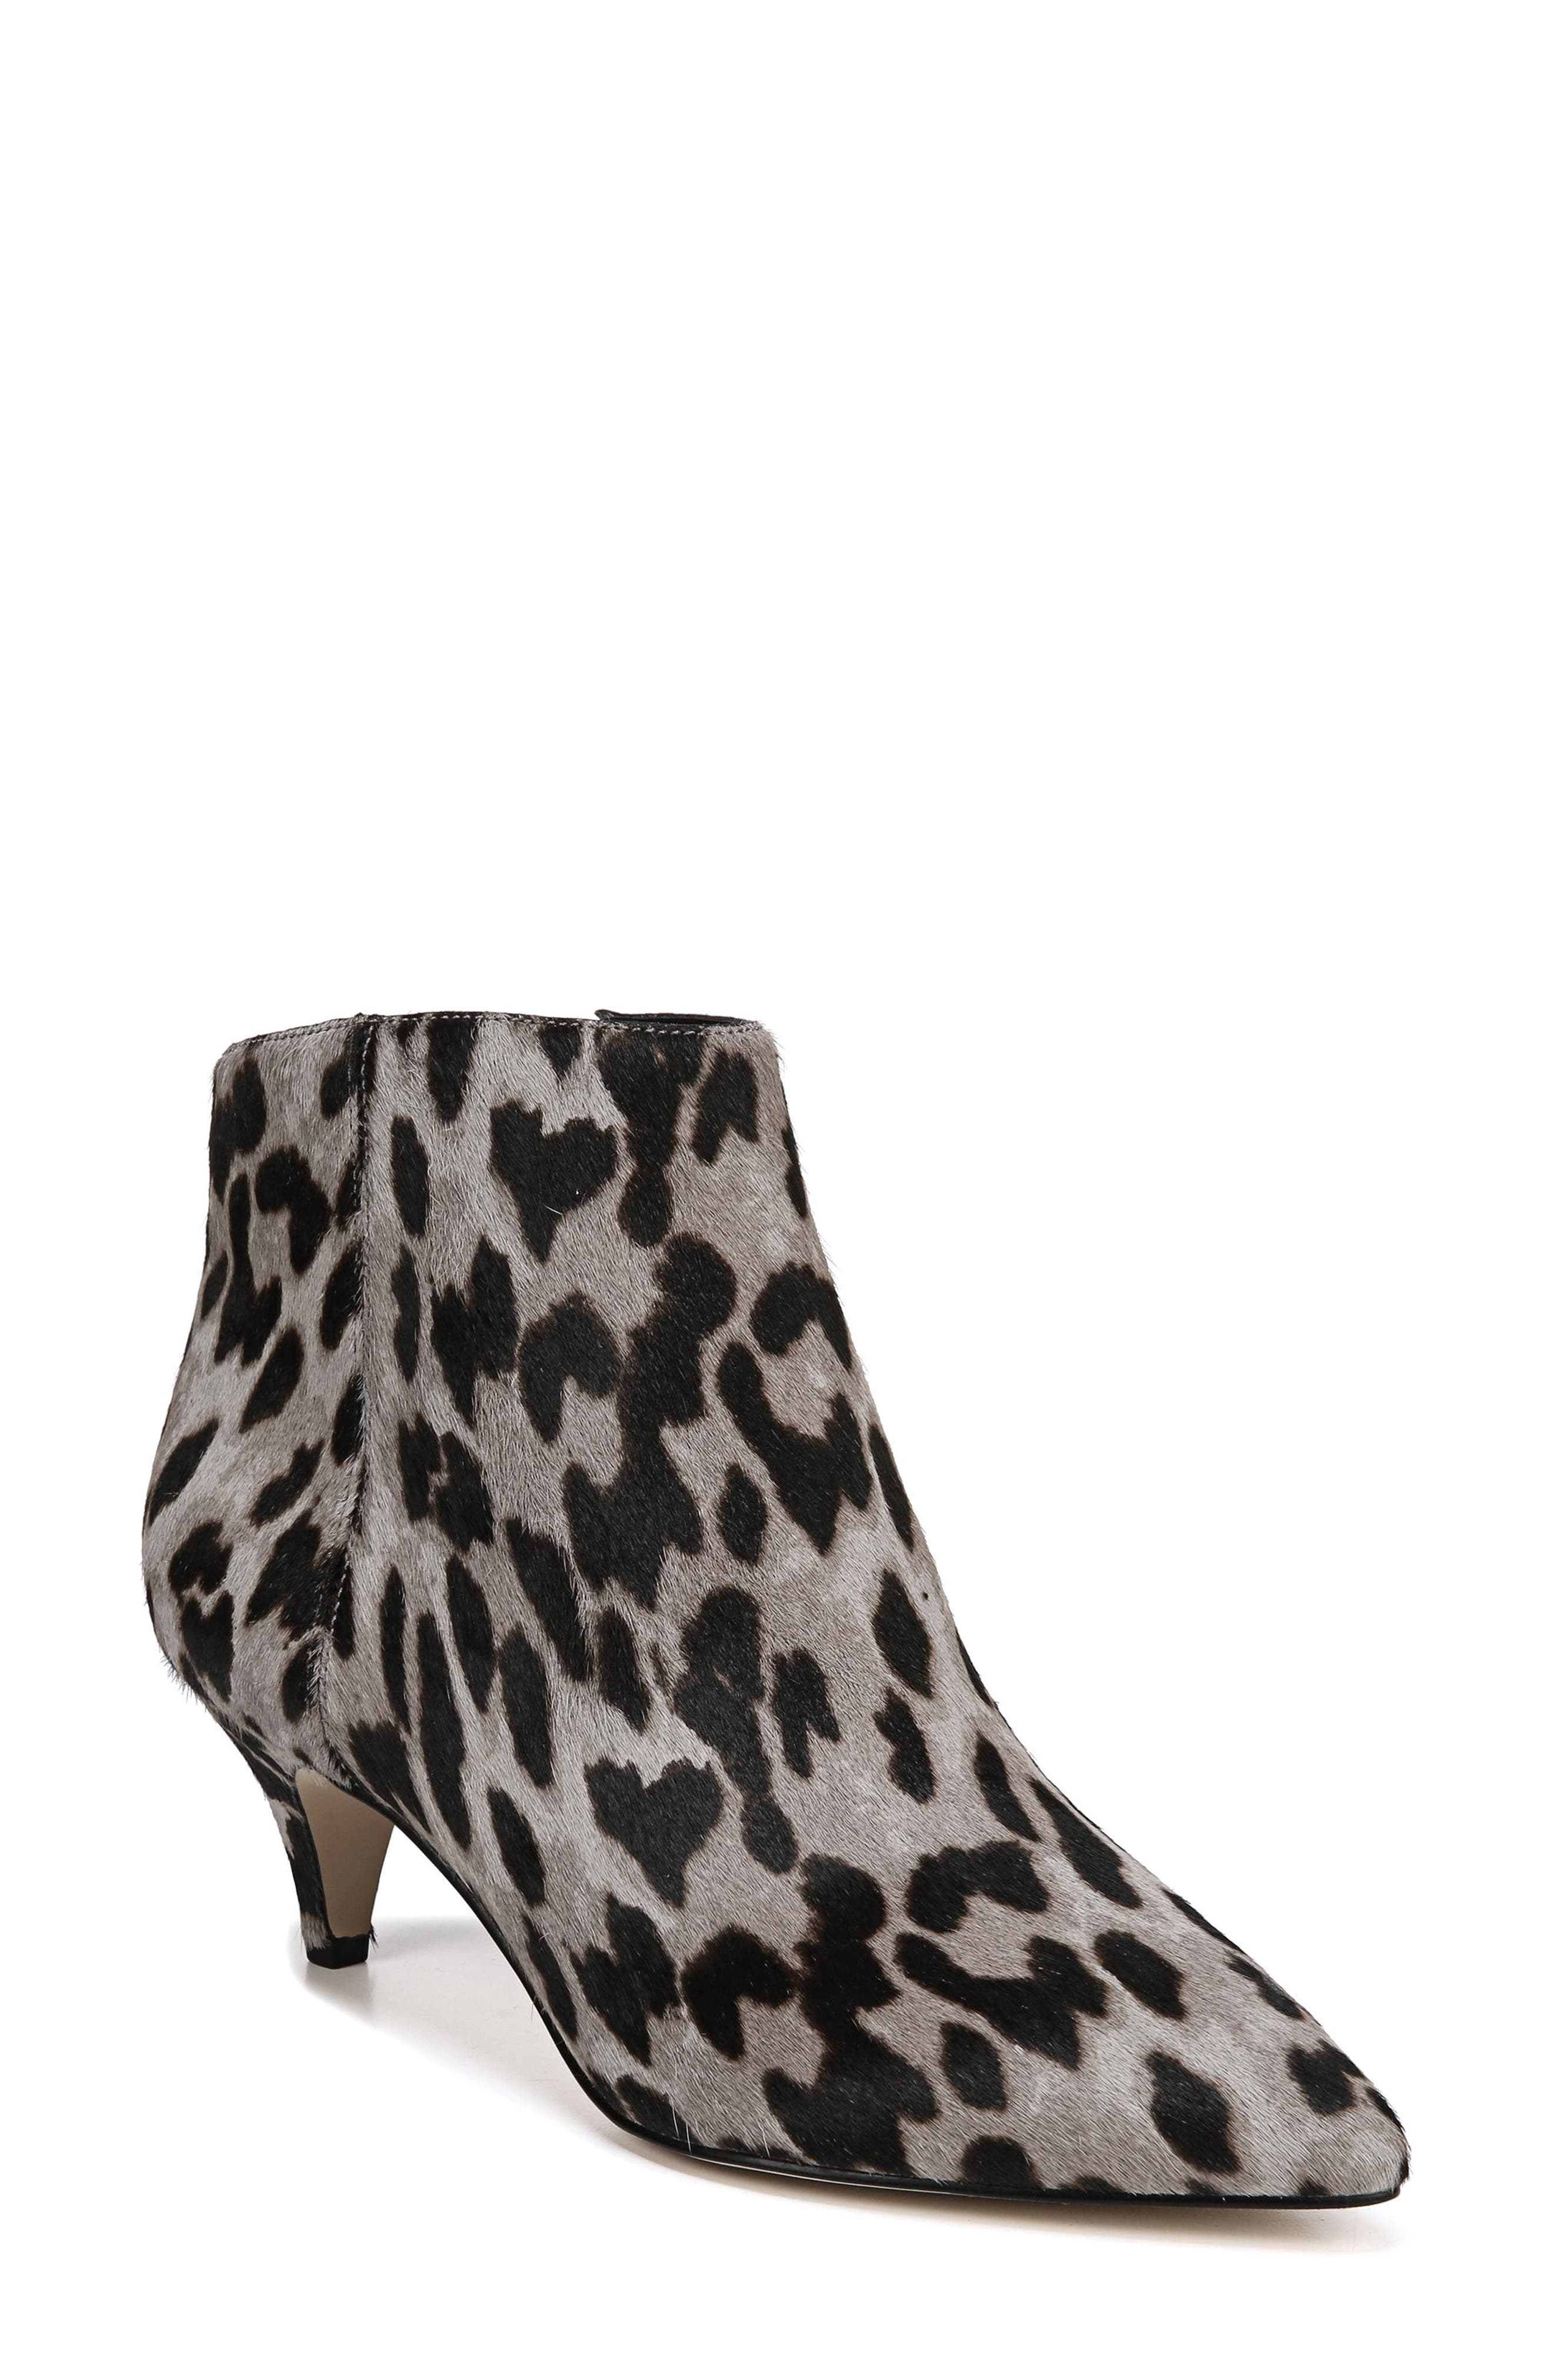 Sam Edelman Kinzey Genuine Calf Hair Pointy Toe Bootie, Grey